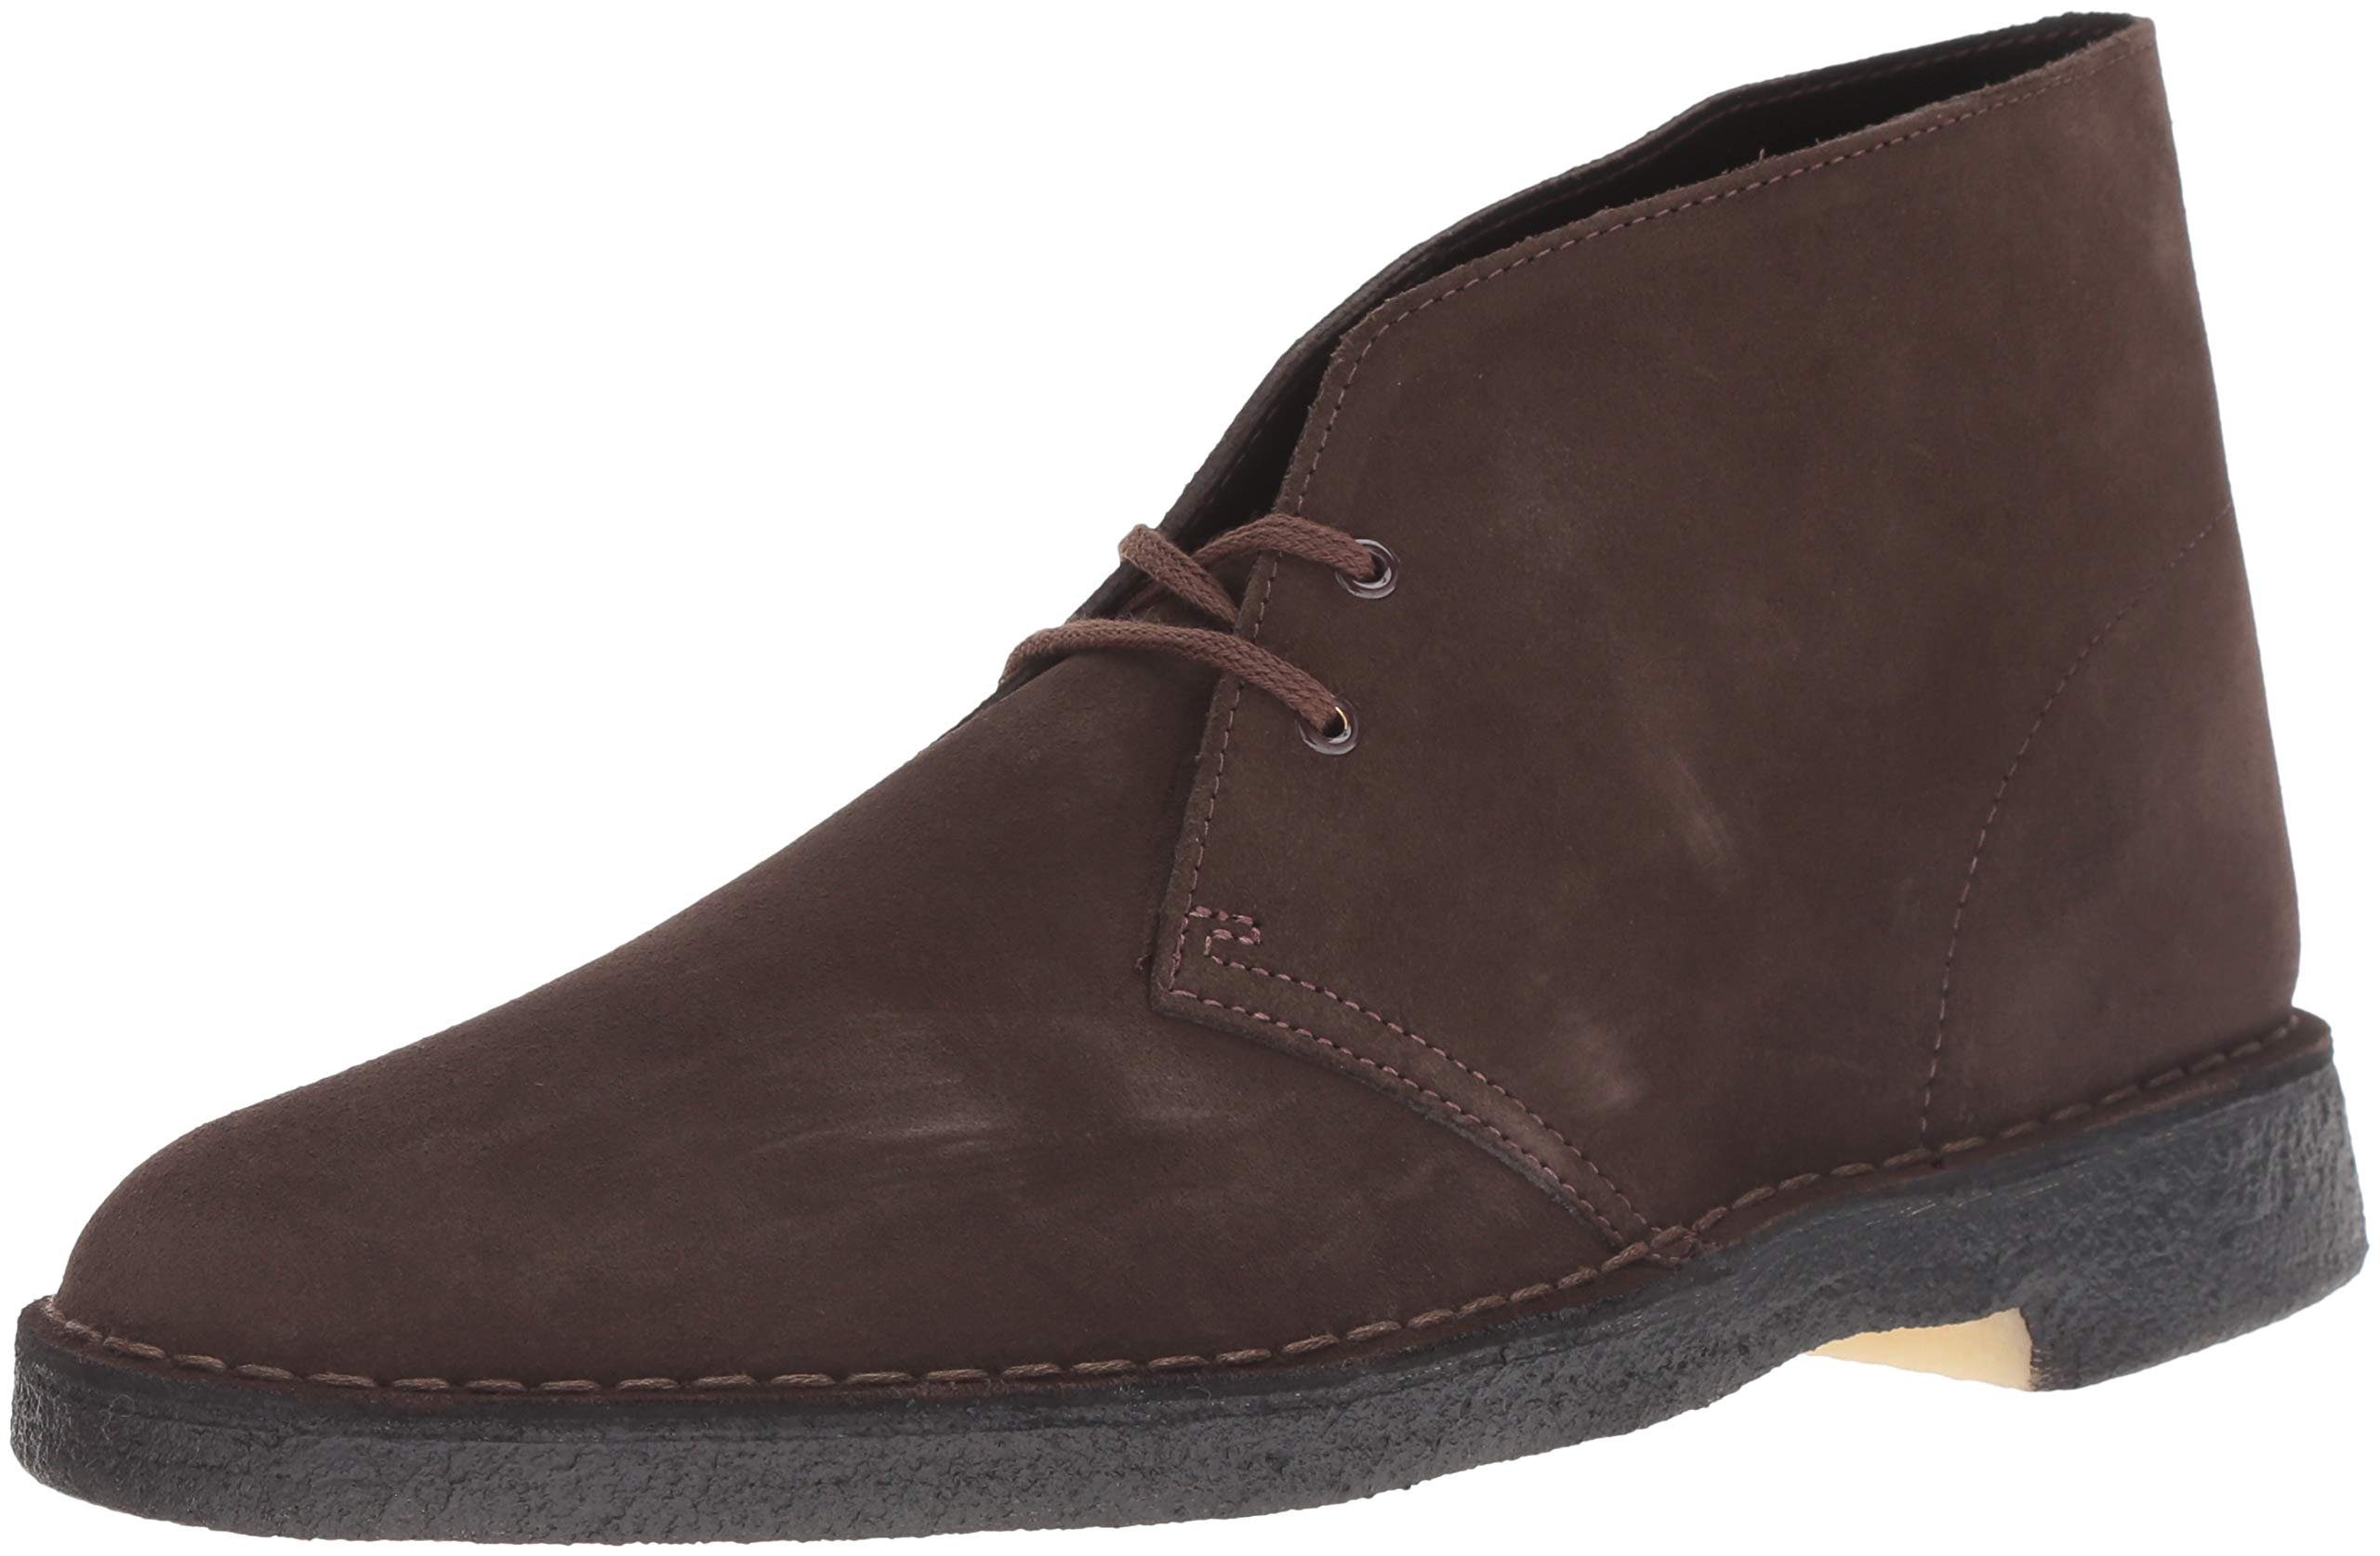 CLARKS Originals Men's Desert Boot,Brown Suede,11.5 M US